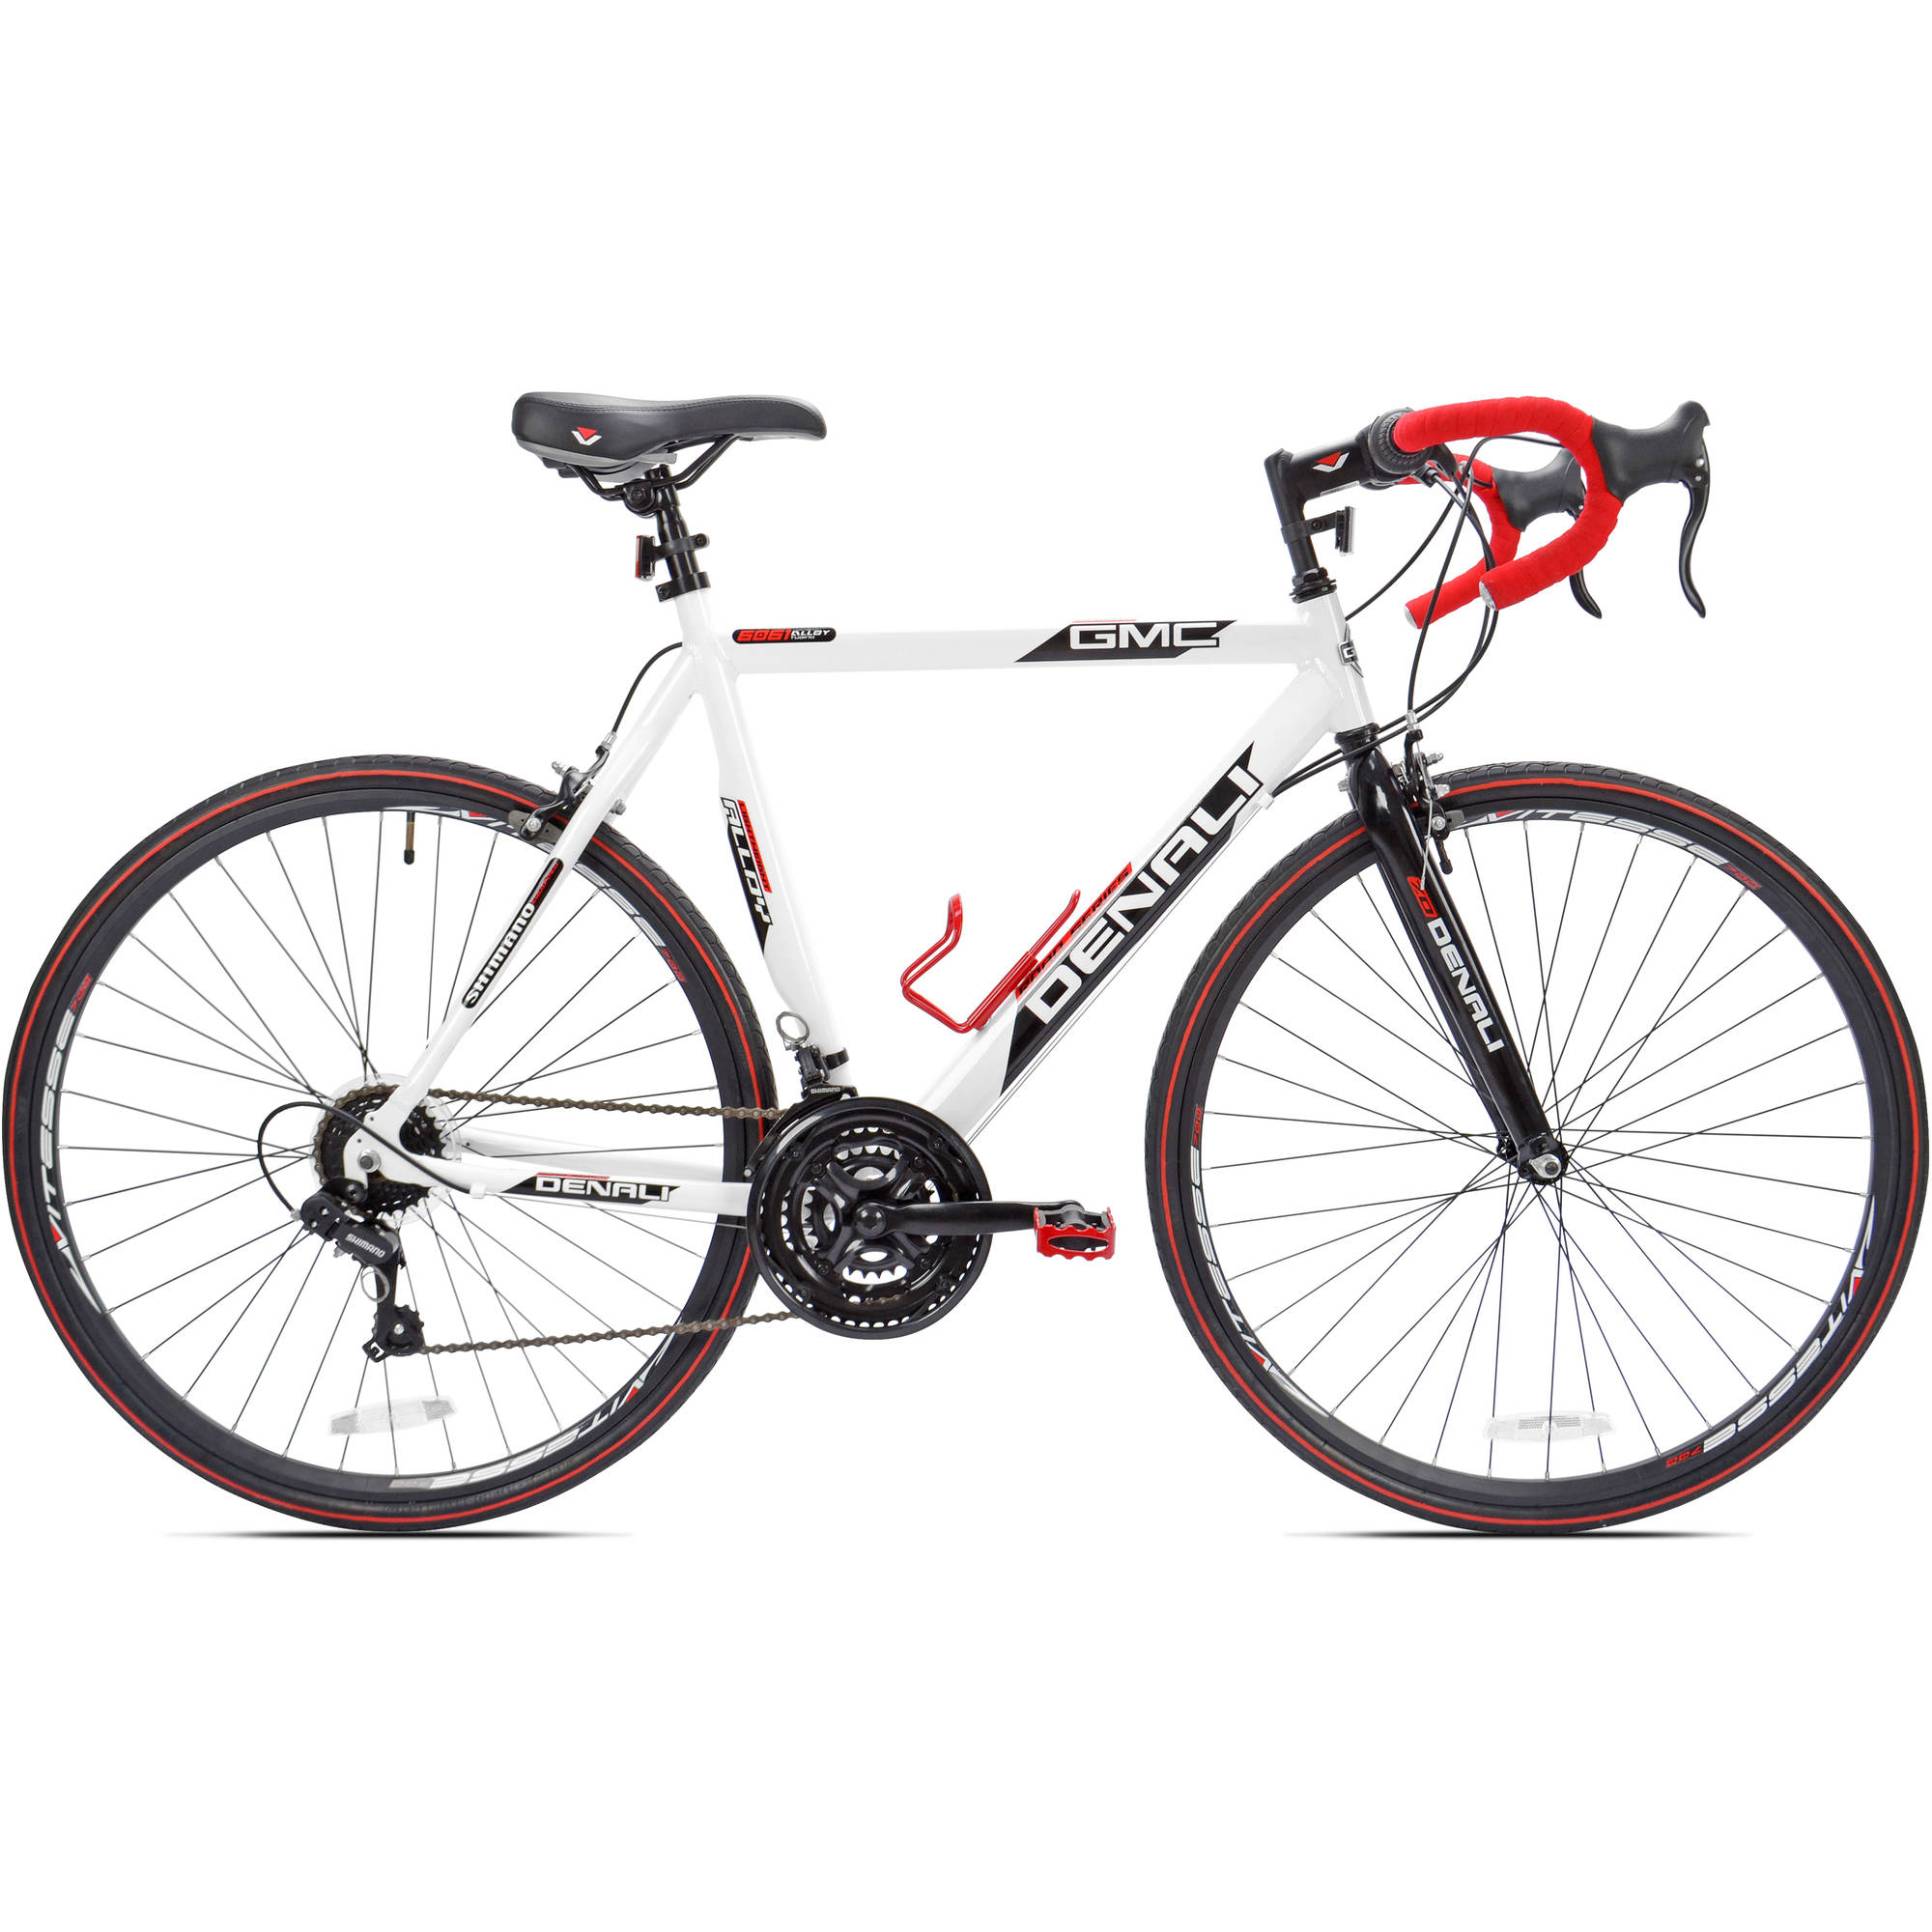 "22.5"" GMC Denali 700cc Men's Bike, White/Red"